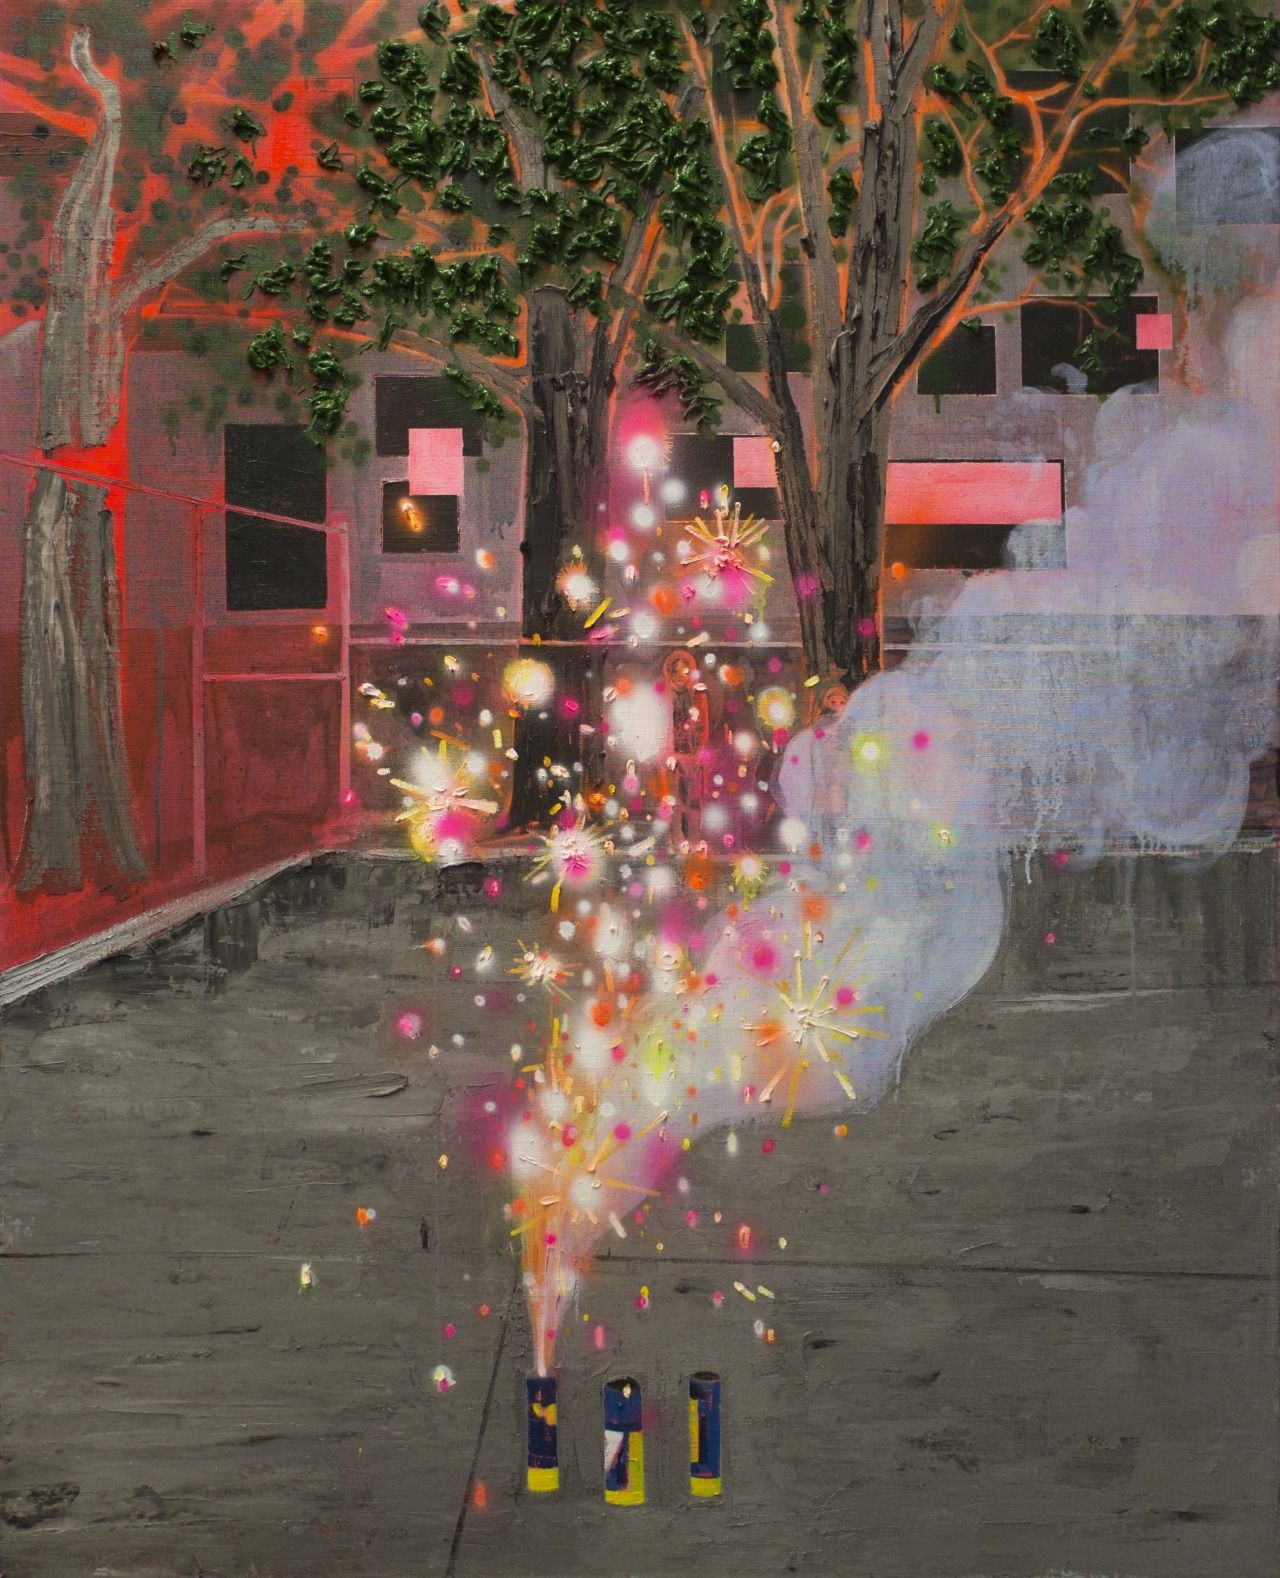 Kim Dorland, Fireworks, oil and acrylic on linen over wood panel, 48 x 60 in., 2014 _____ See more on iheartmyart